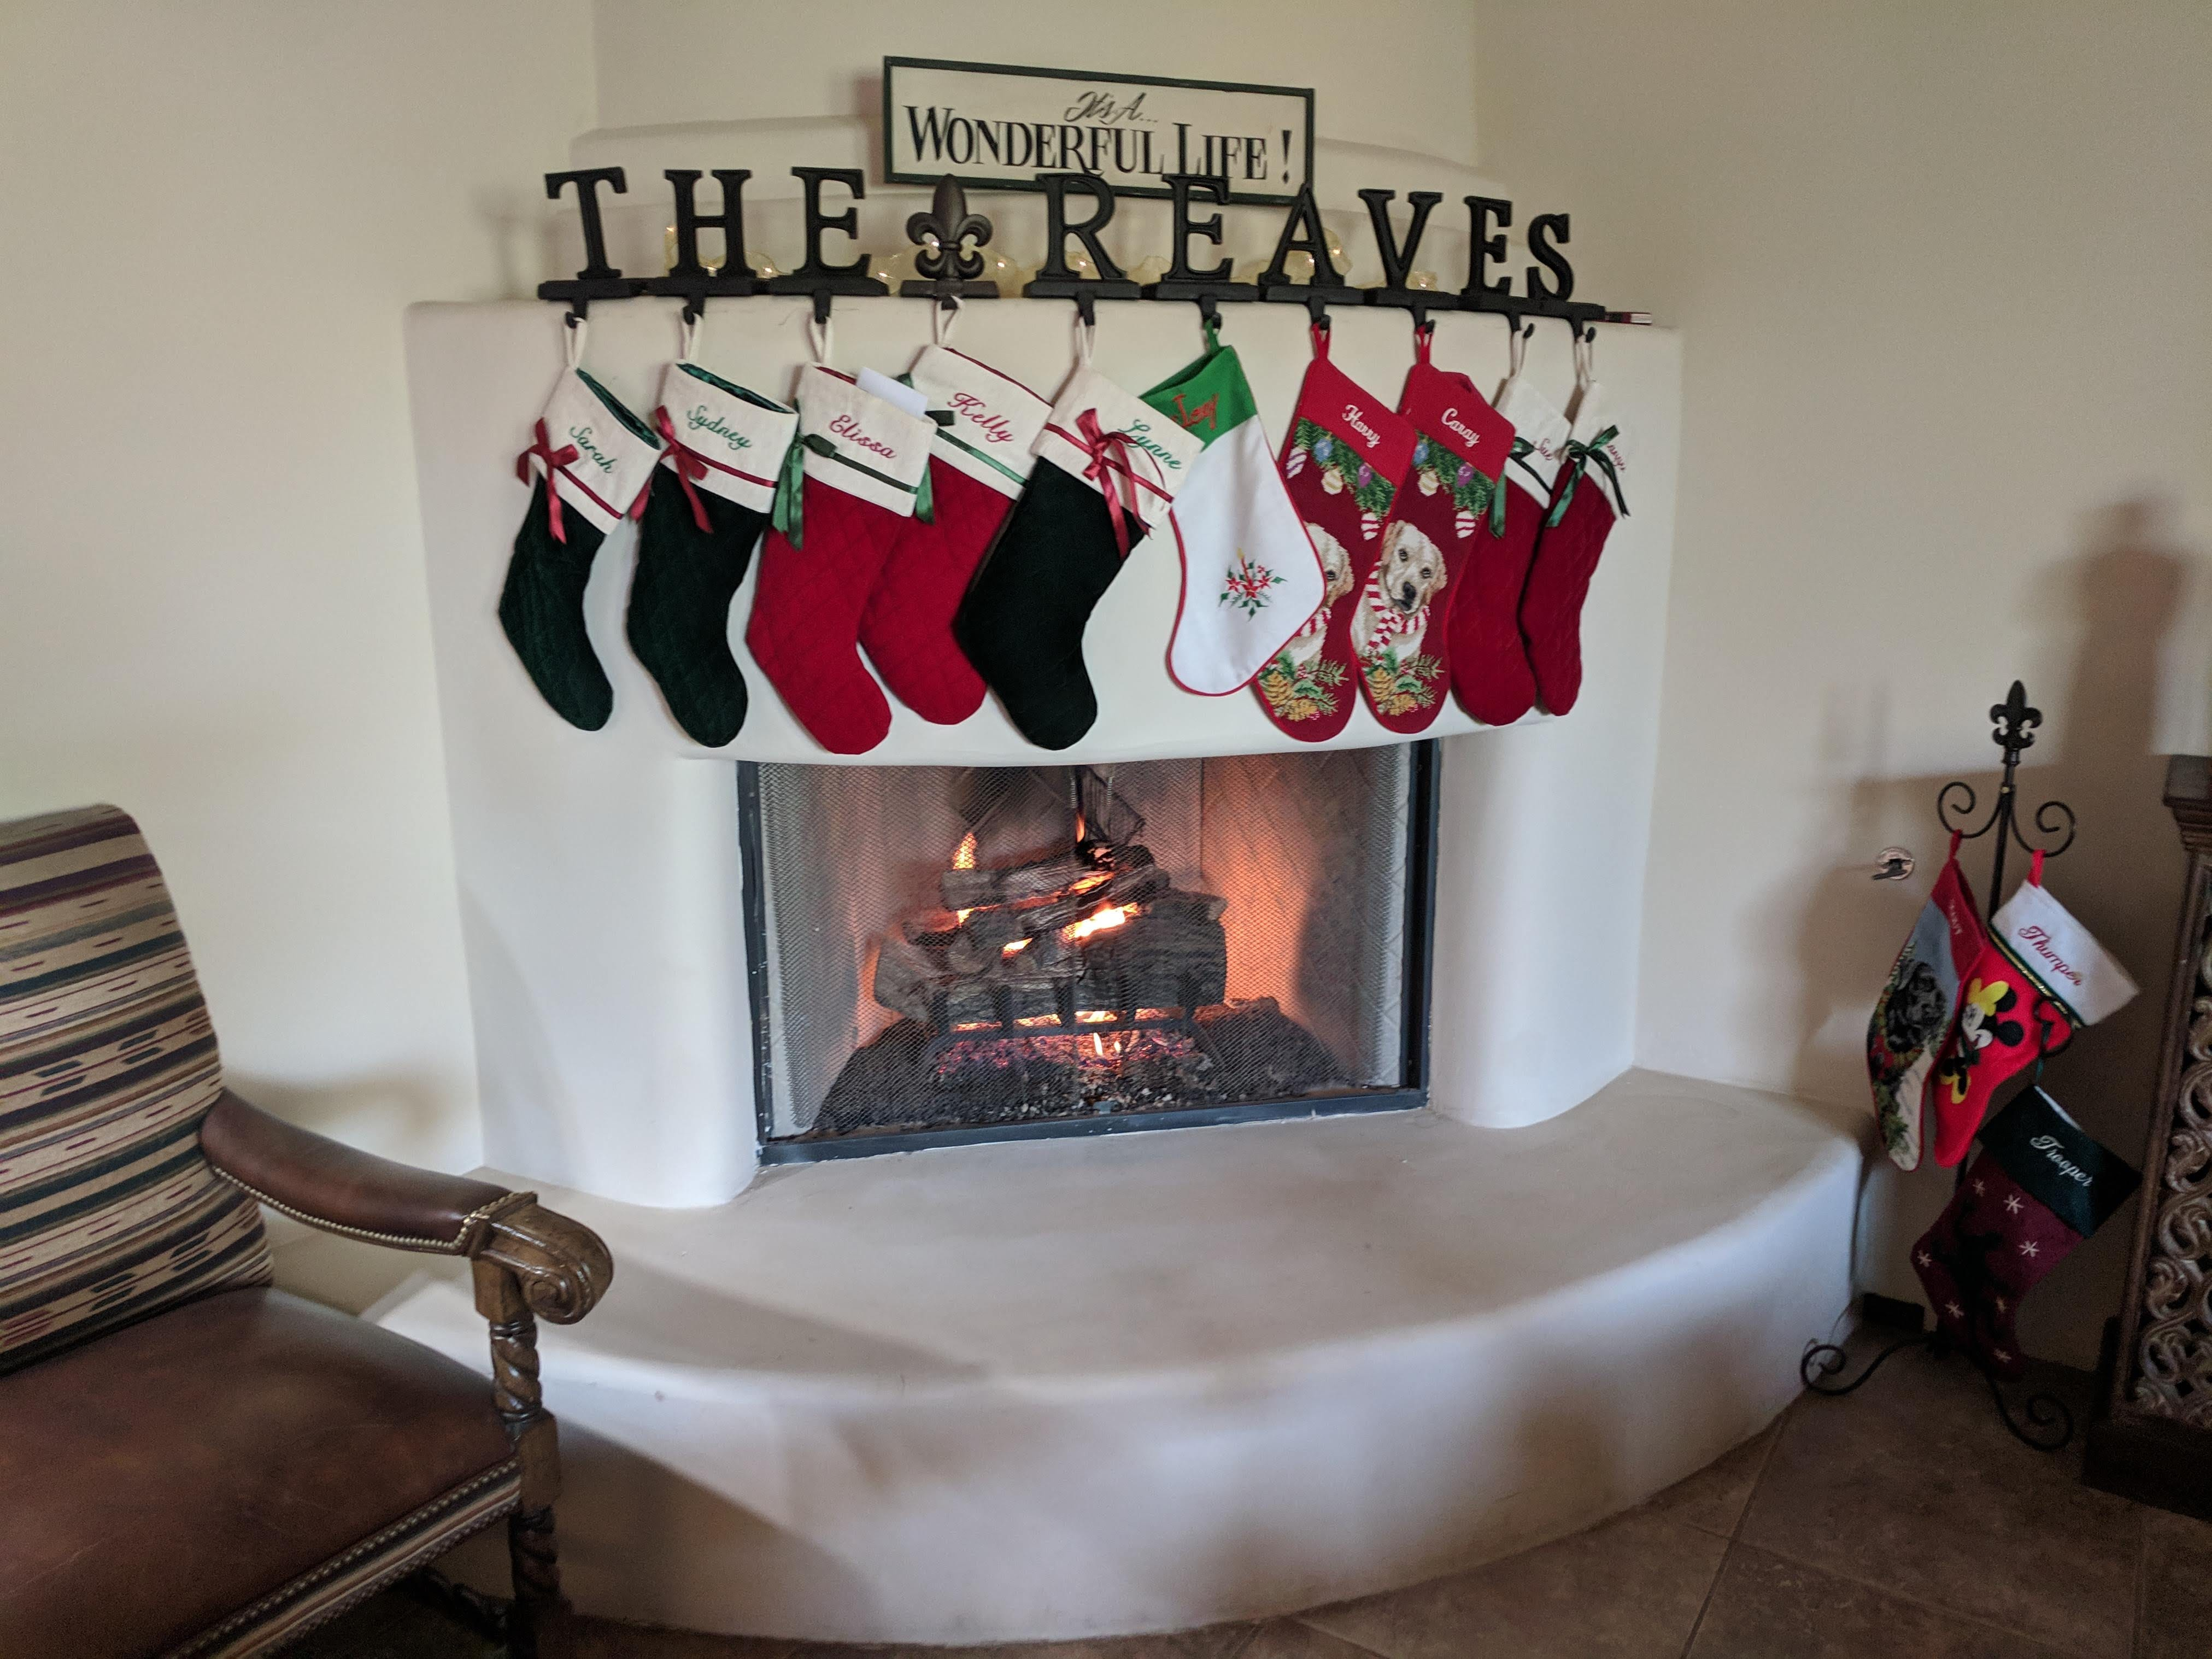 The Reaveses' fireplace, centered in the family room, is ready for Christmas with all of their stockings.